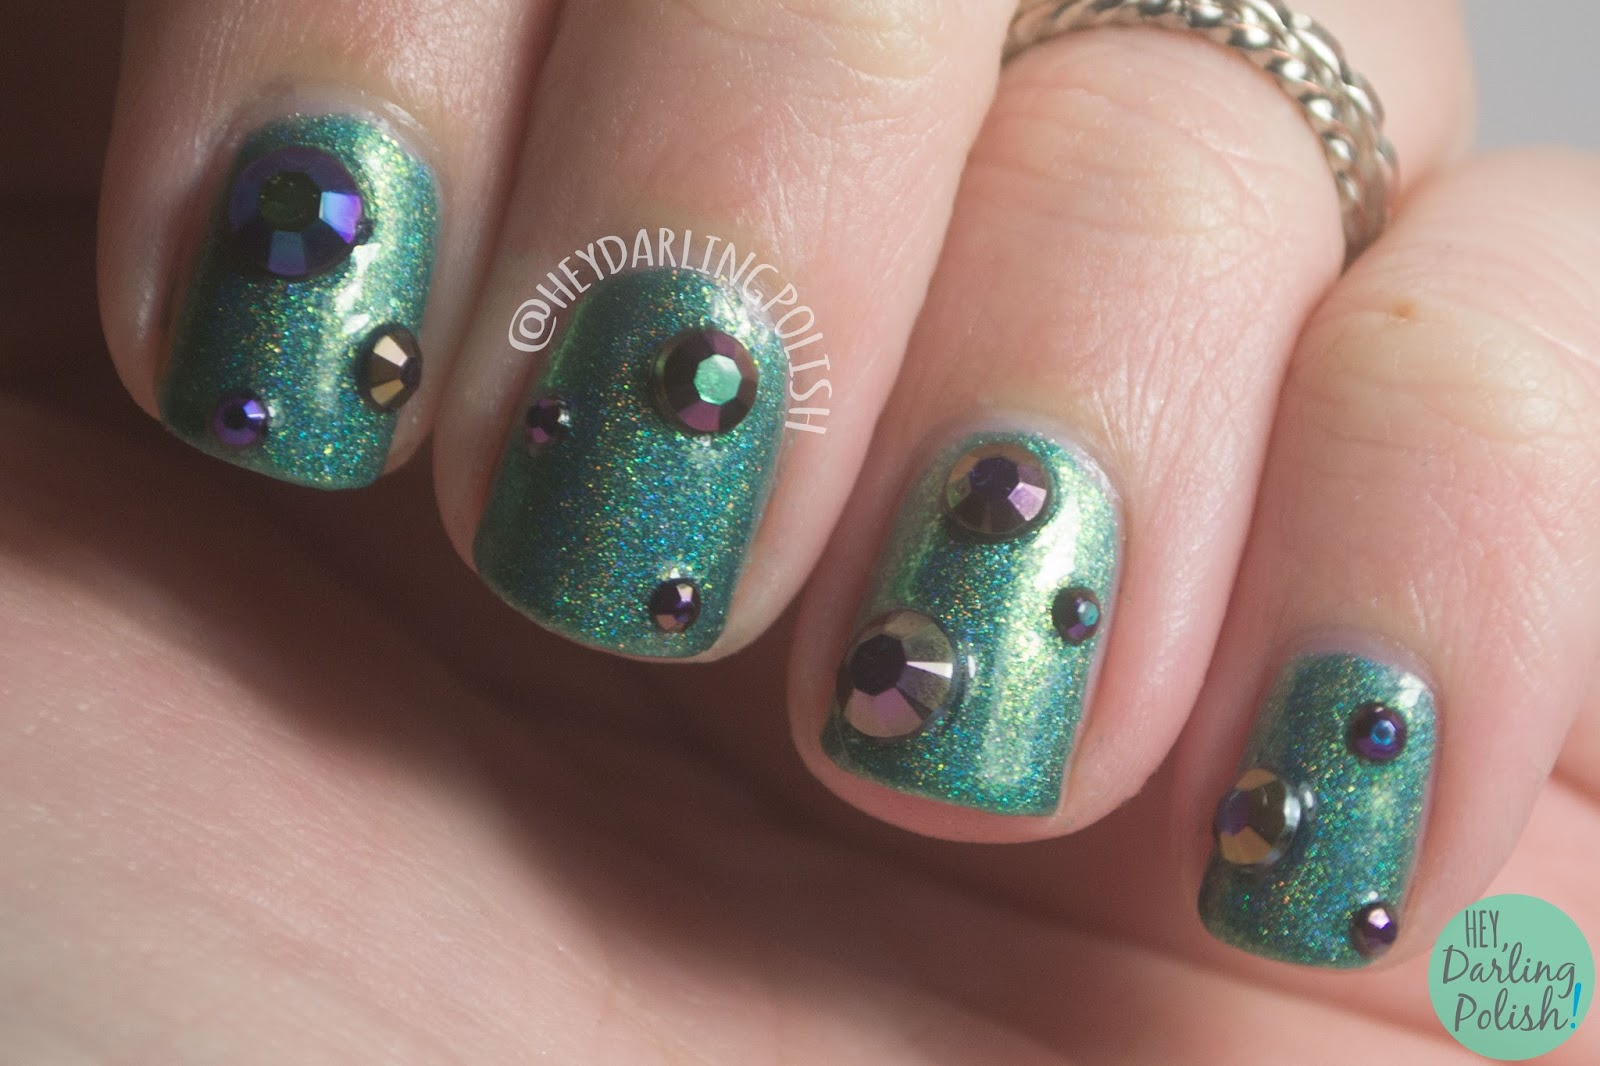 nails, nail art, nail polish, lynbdesigns, born pretty store, rhinestones, holo, hey darling polish